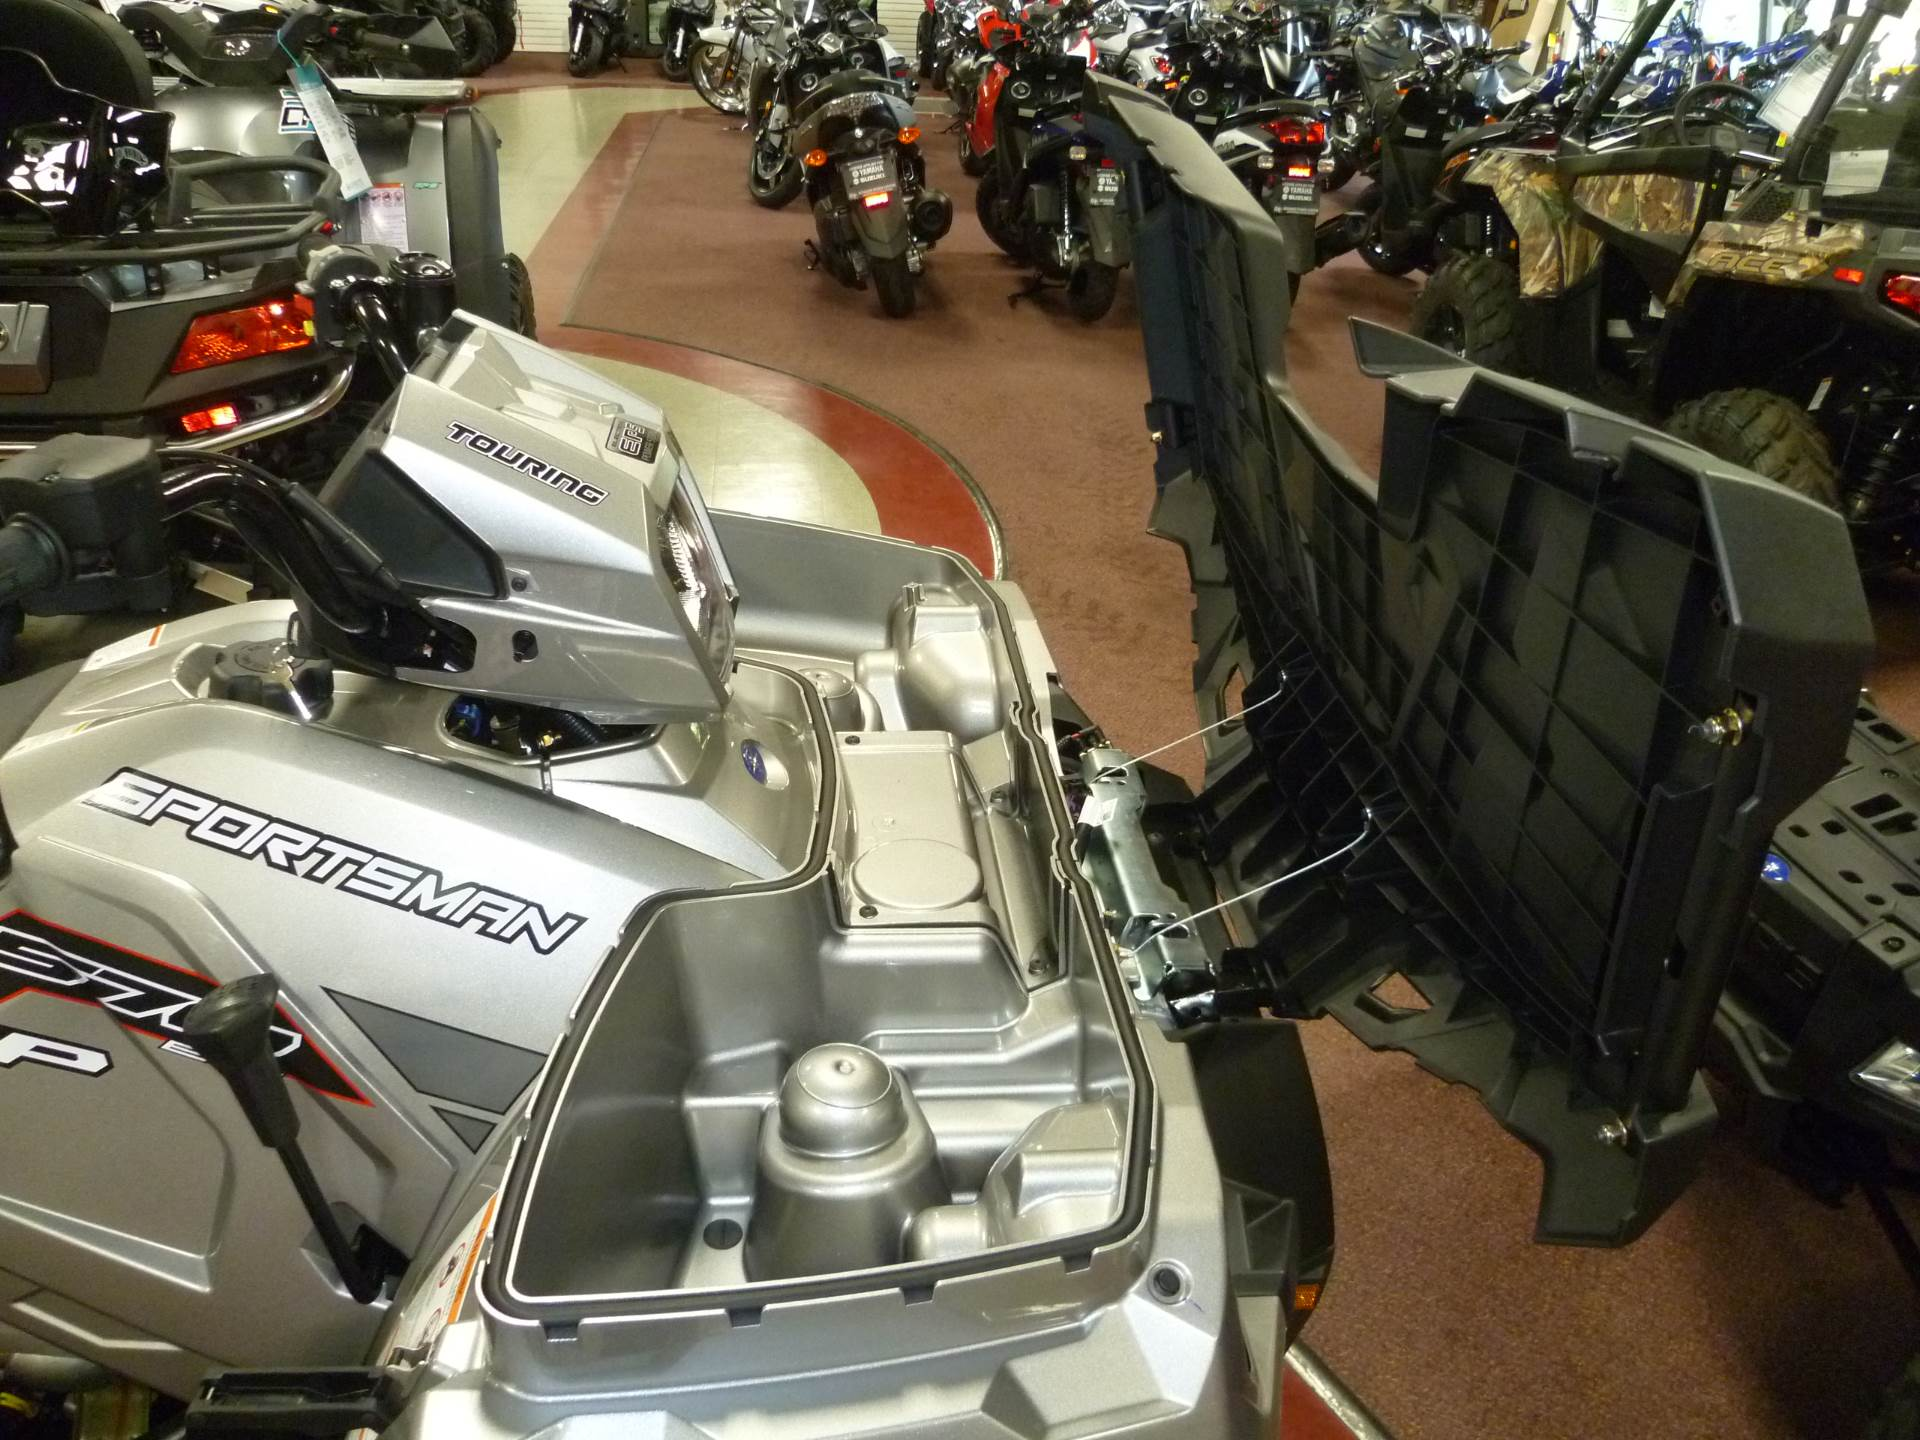 2017 Polaris Sportsman Touring 570 SP 9